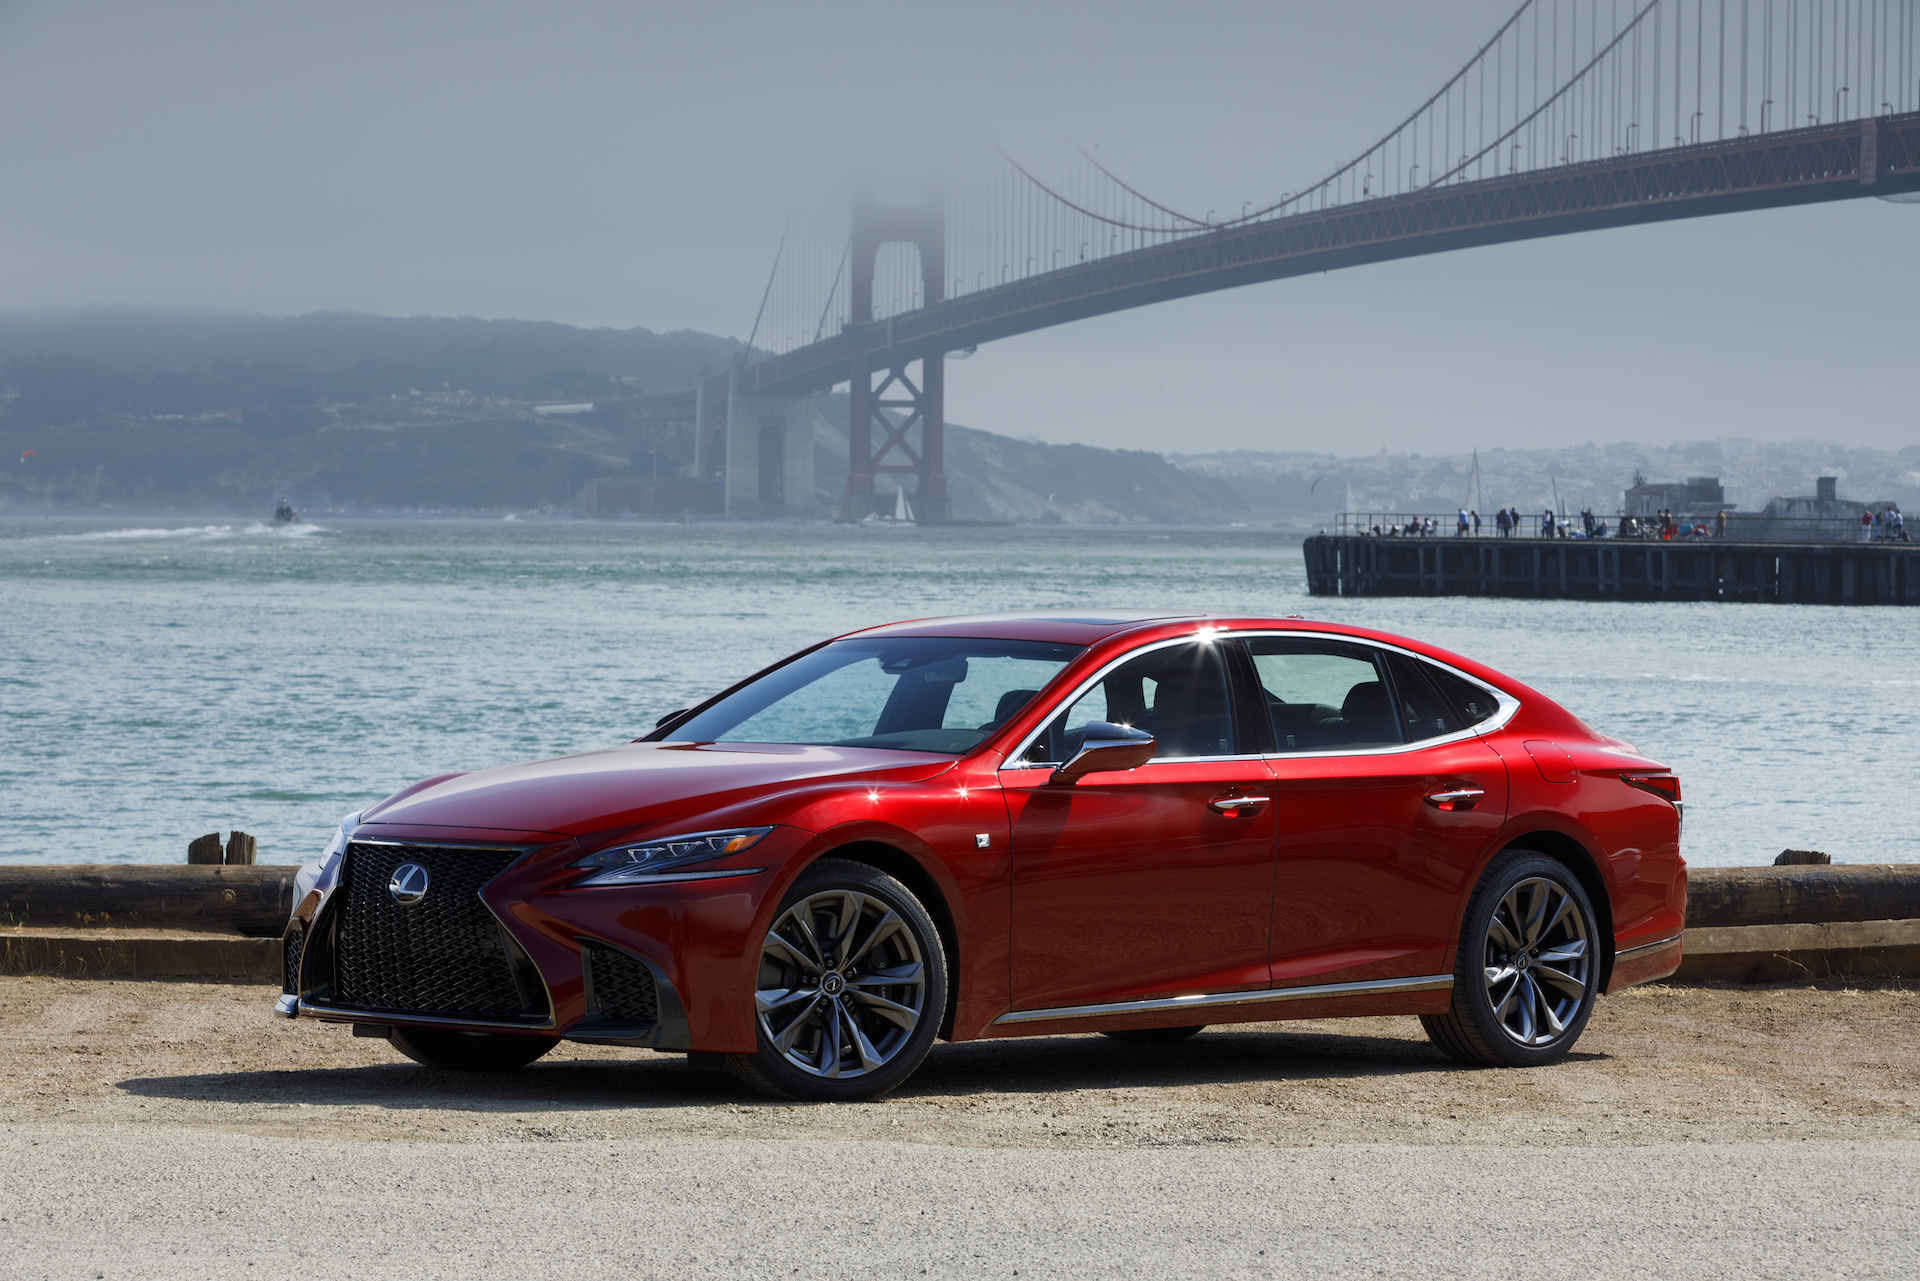 Car Brands Starting With F >> 2018 Lexus LS priced from $75,995